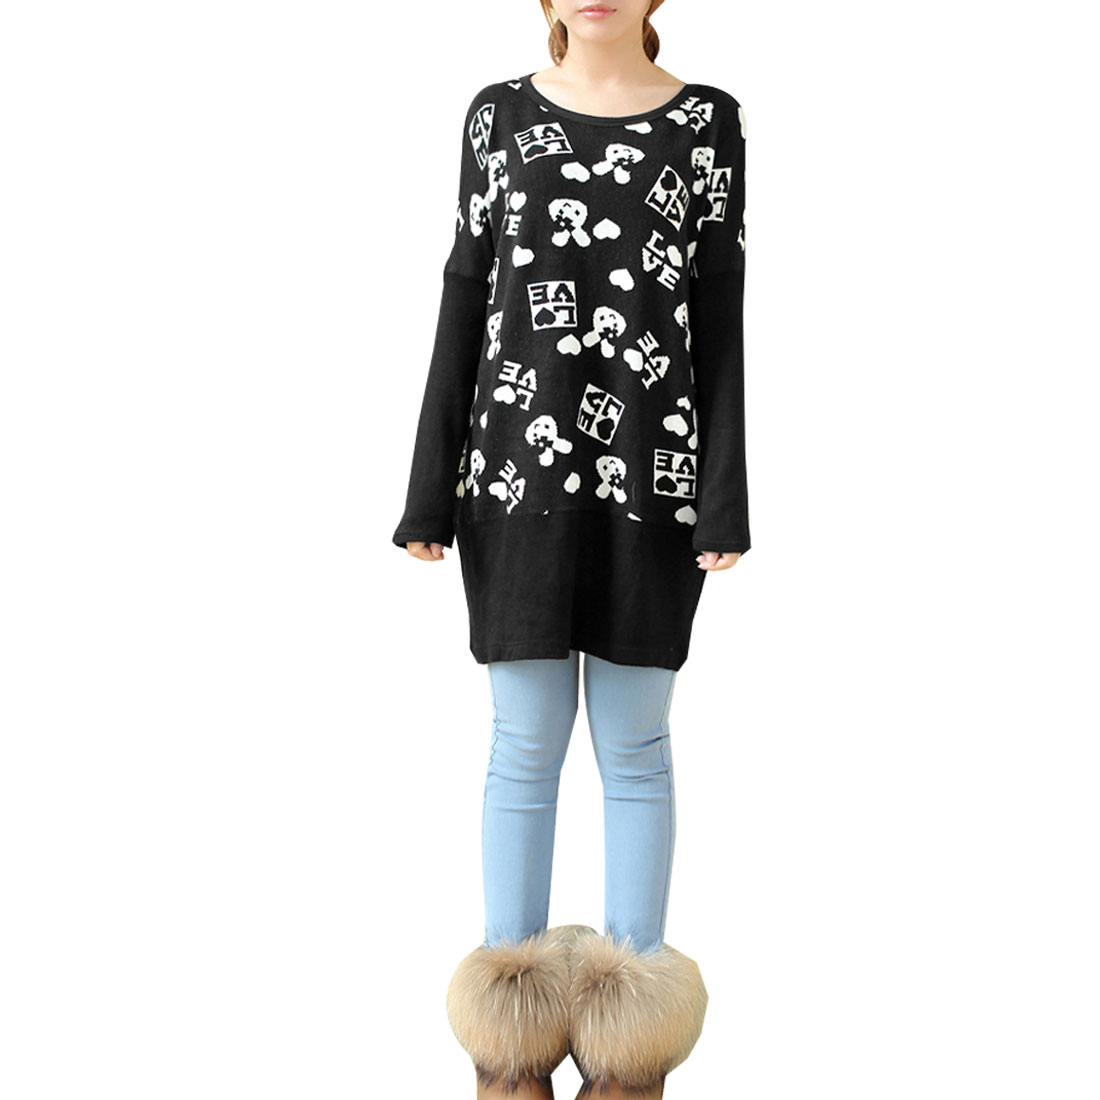 Maternity Long Sleeves Scoop Neck Cartoon Pattern Stretchy Black Sweater S